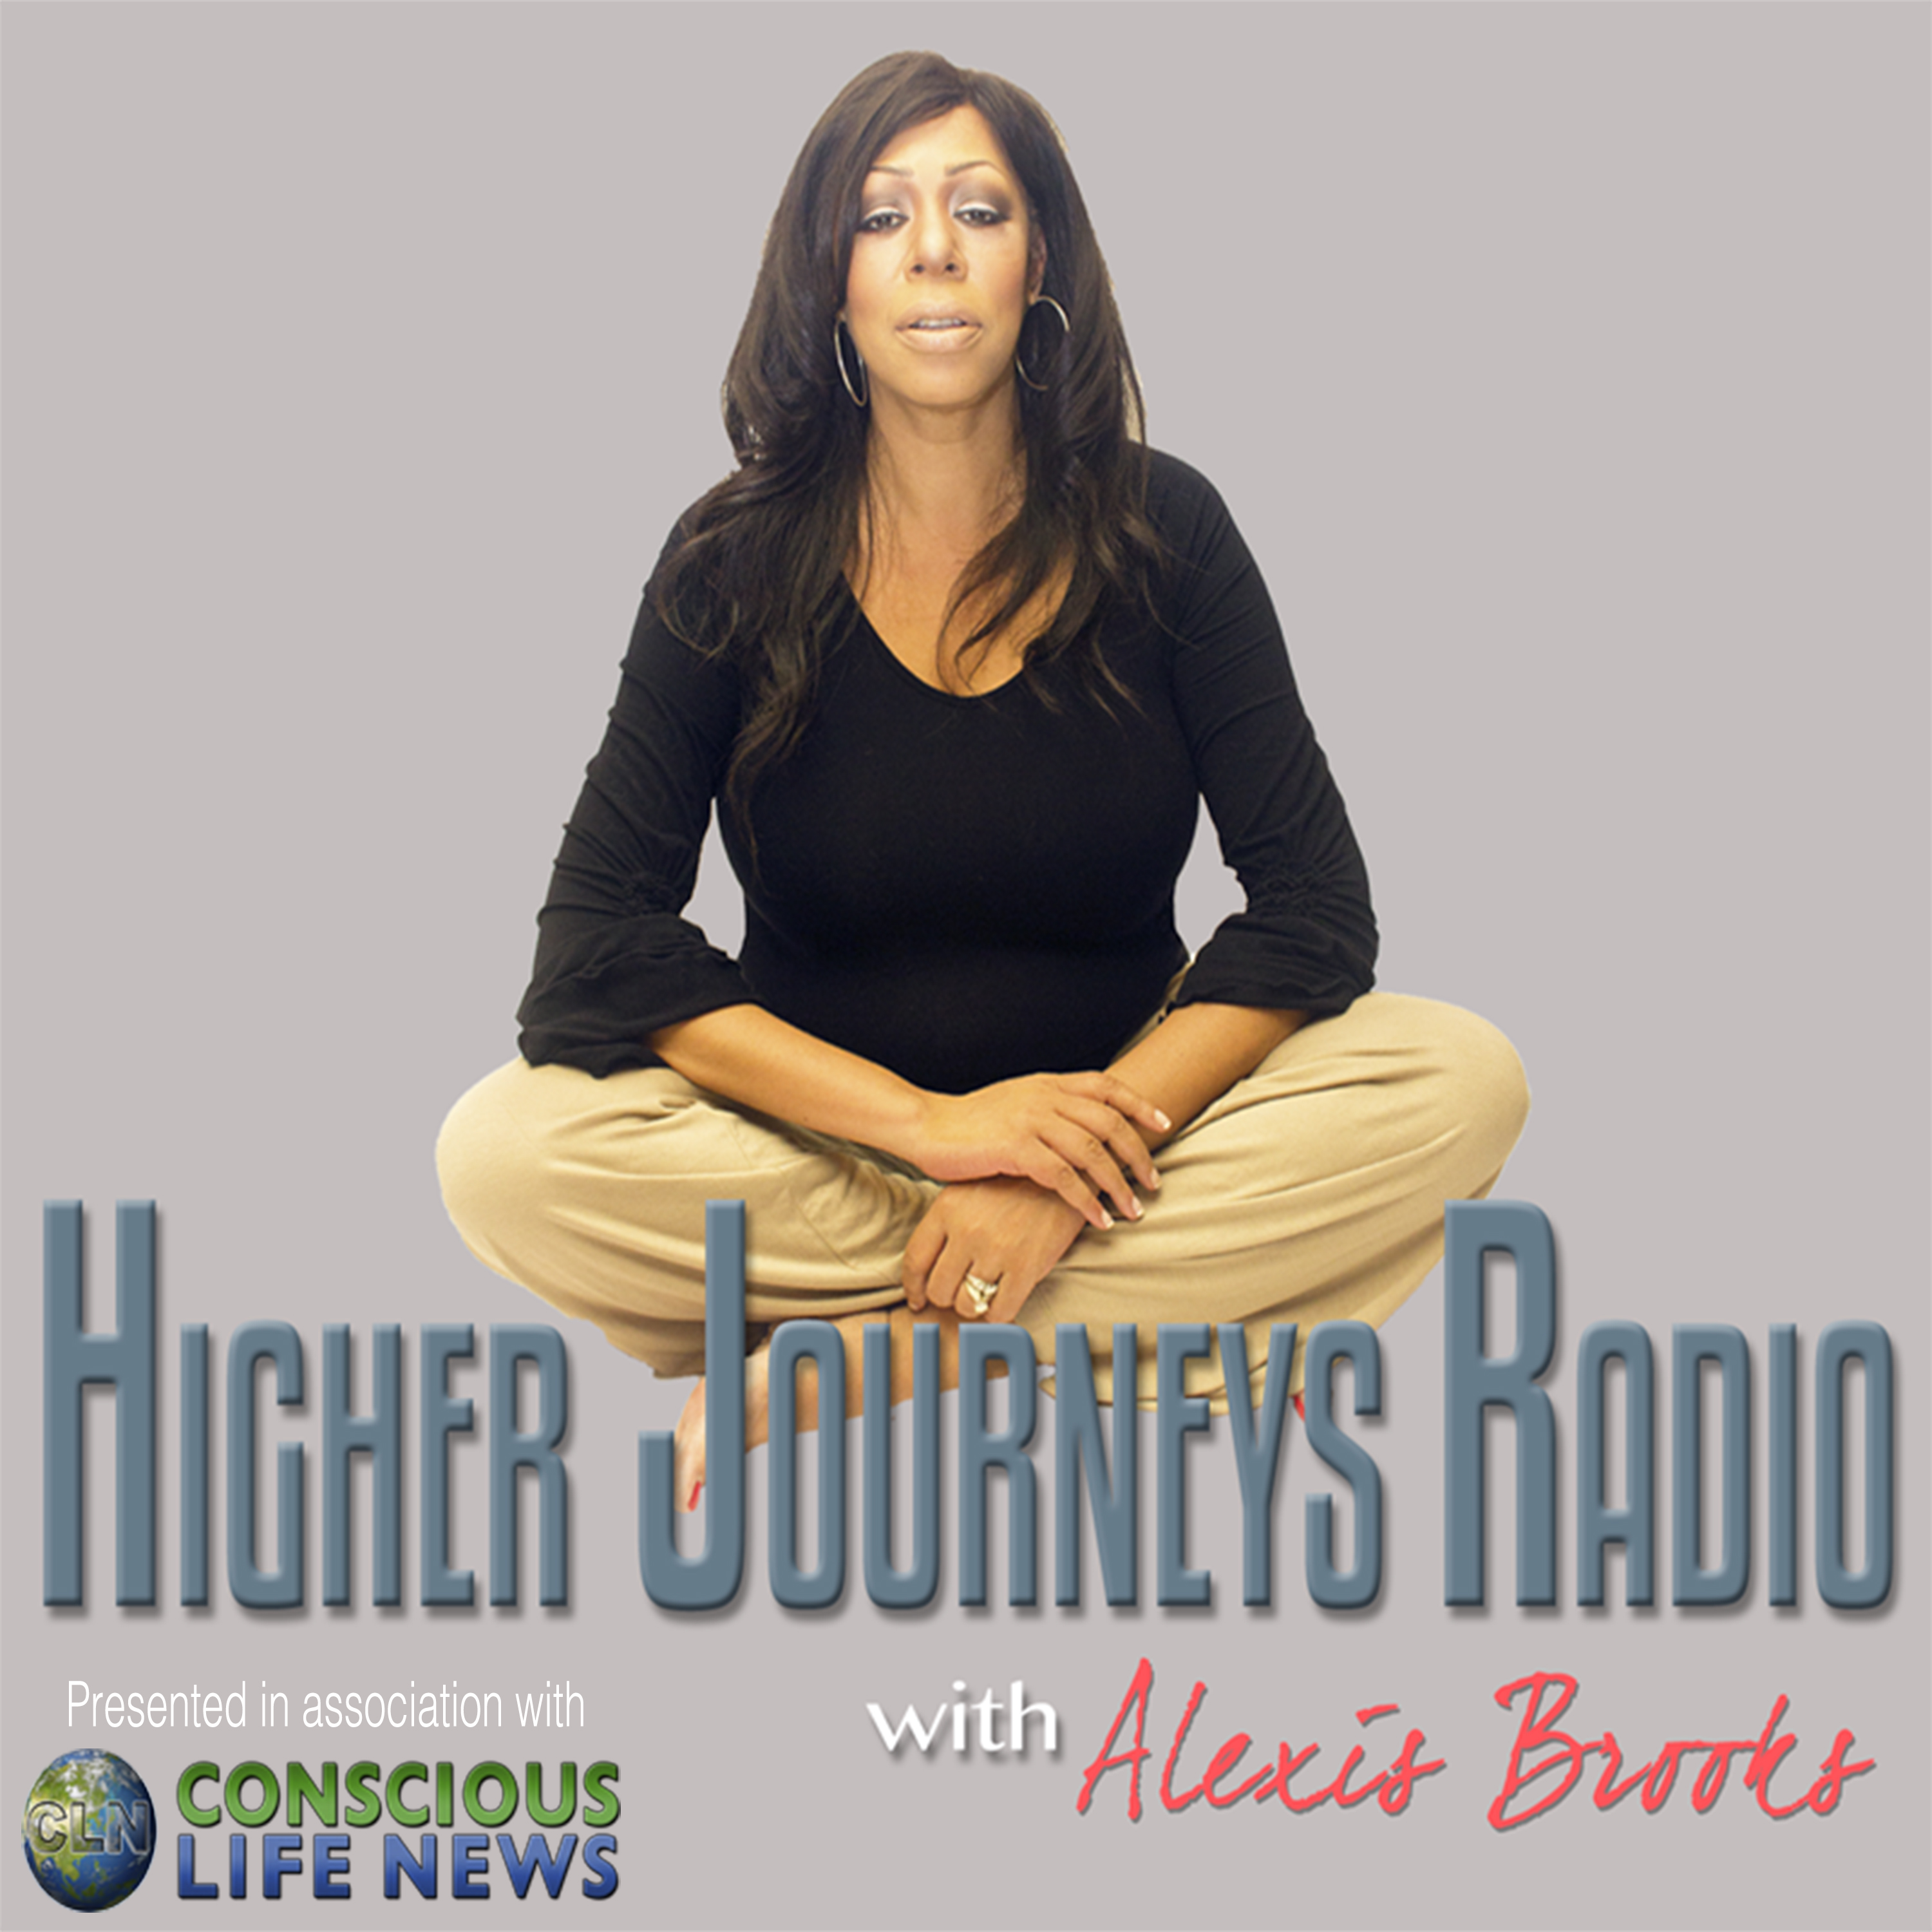 Higher Journeys Radio with Alexis Brooks